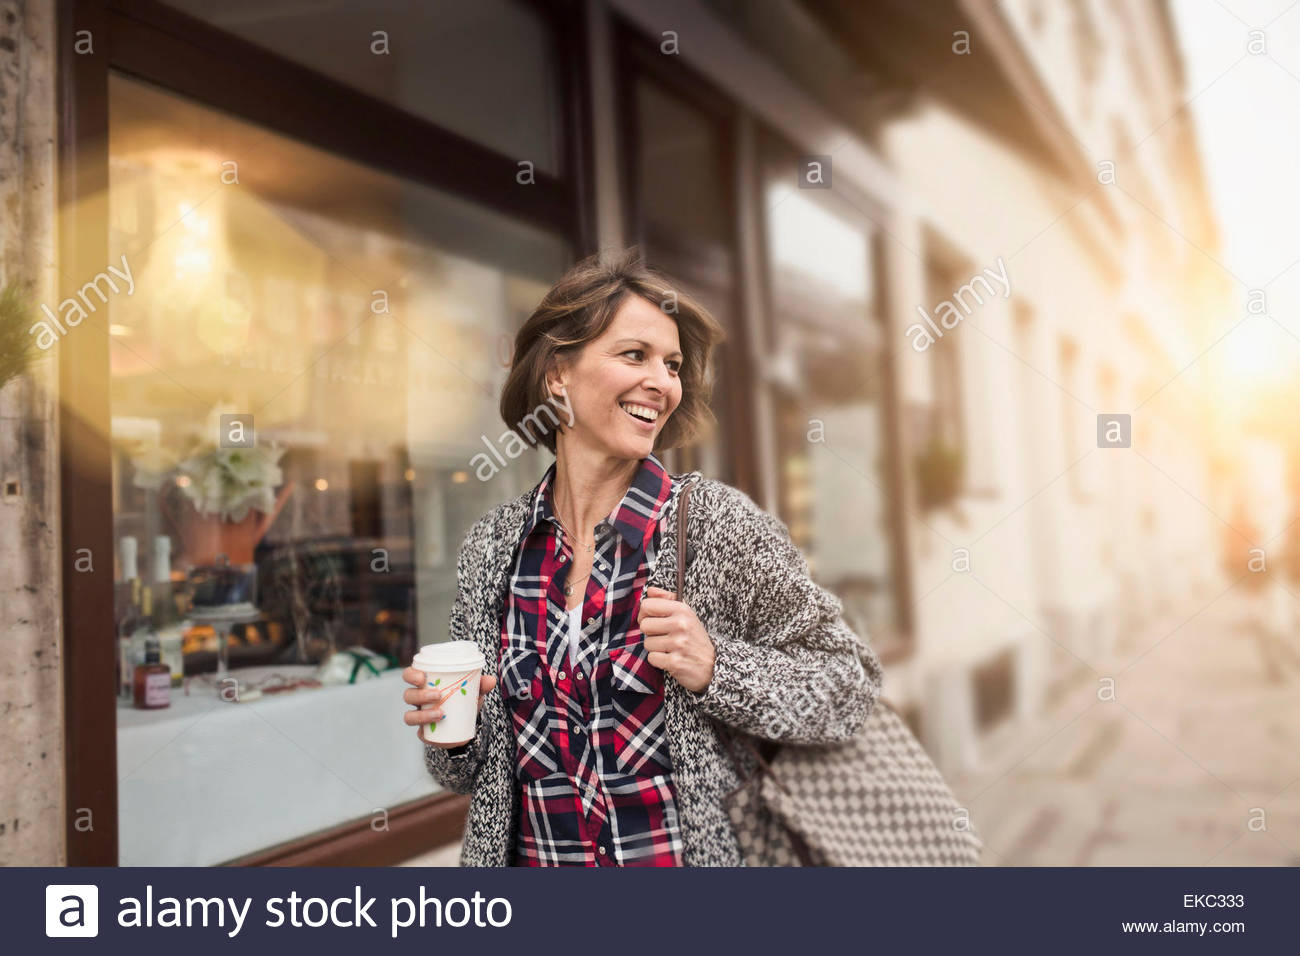 Woman having coffee while shopping - Stock Image